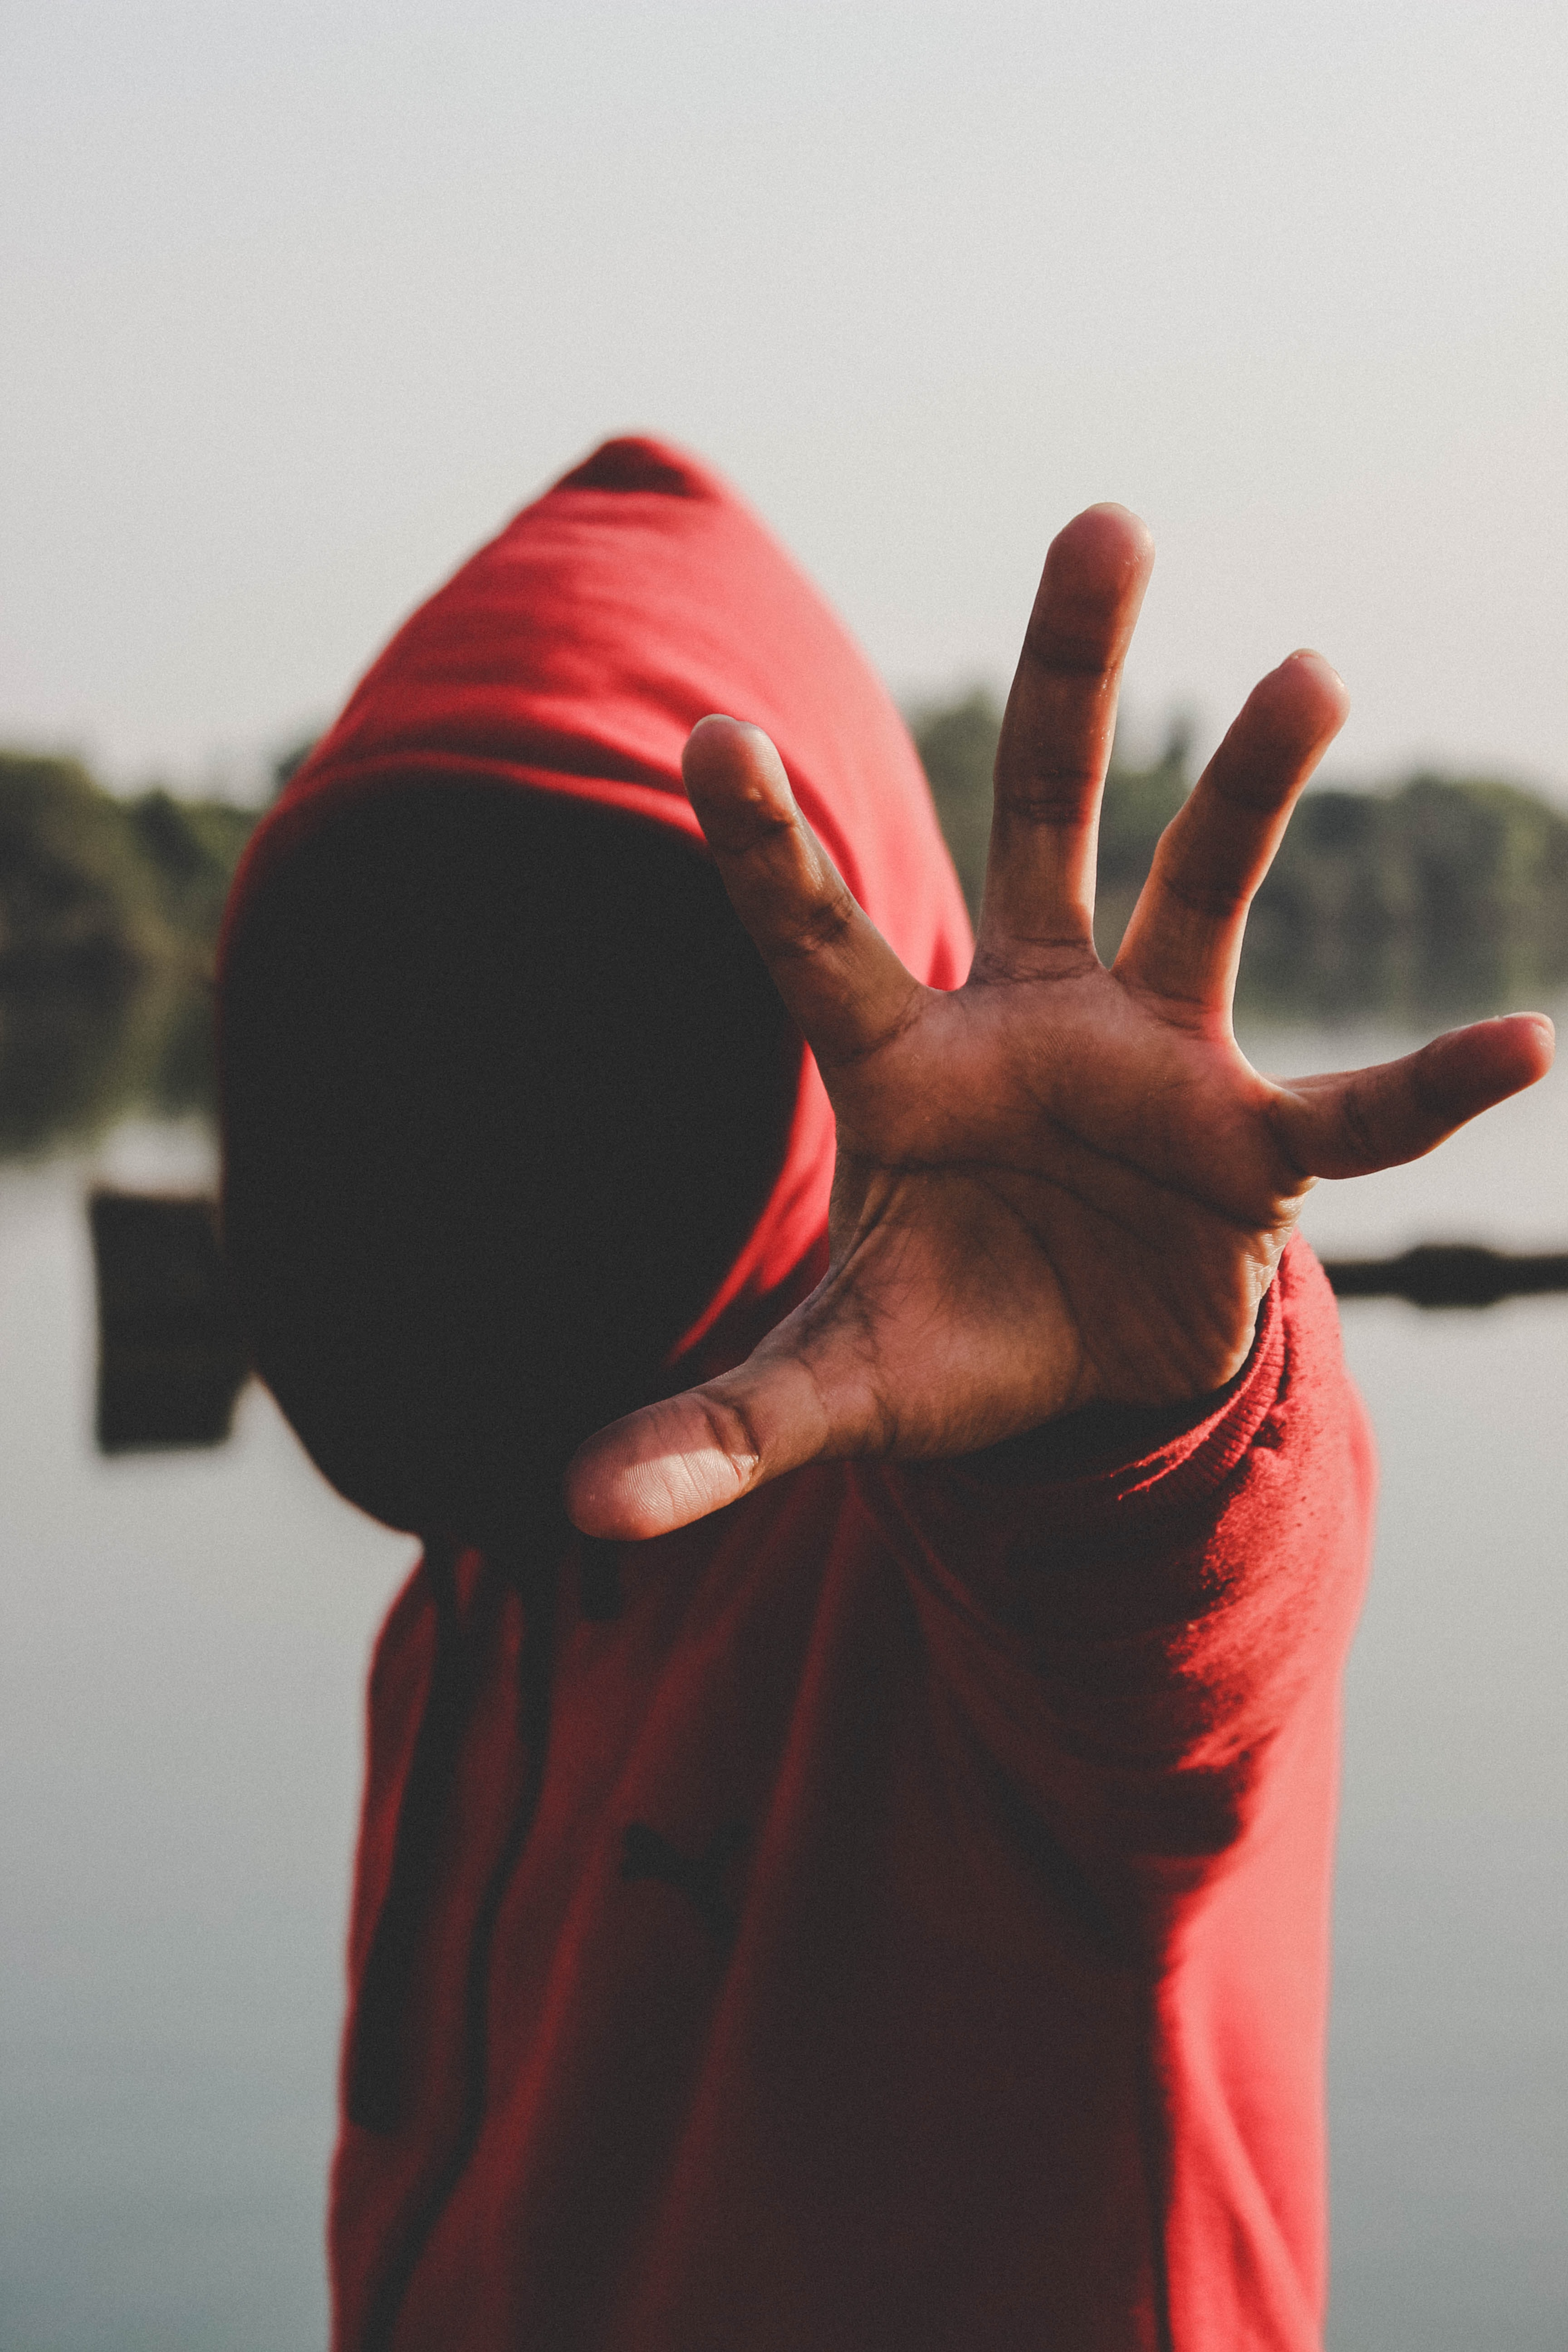 shallow focus photography of person in red hooded jacket